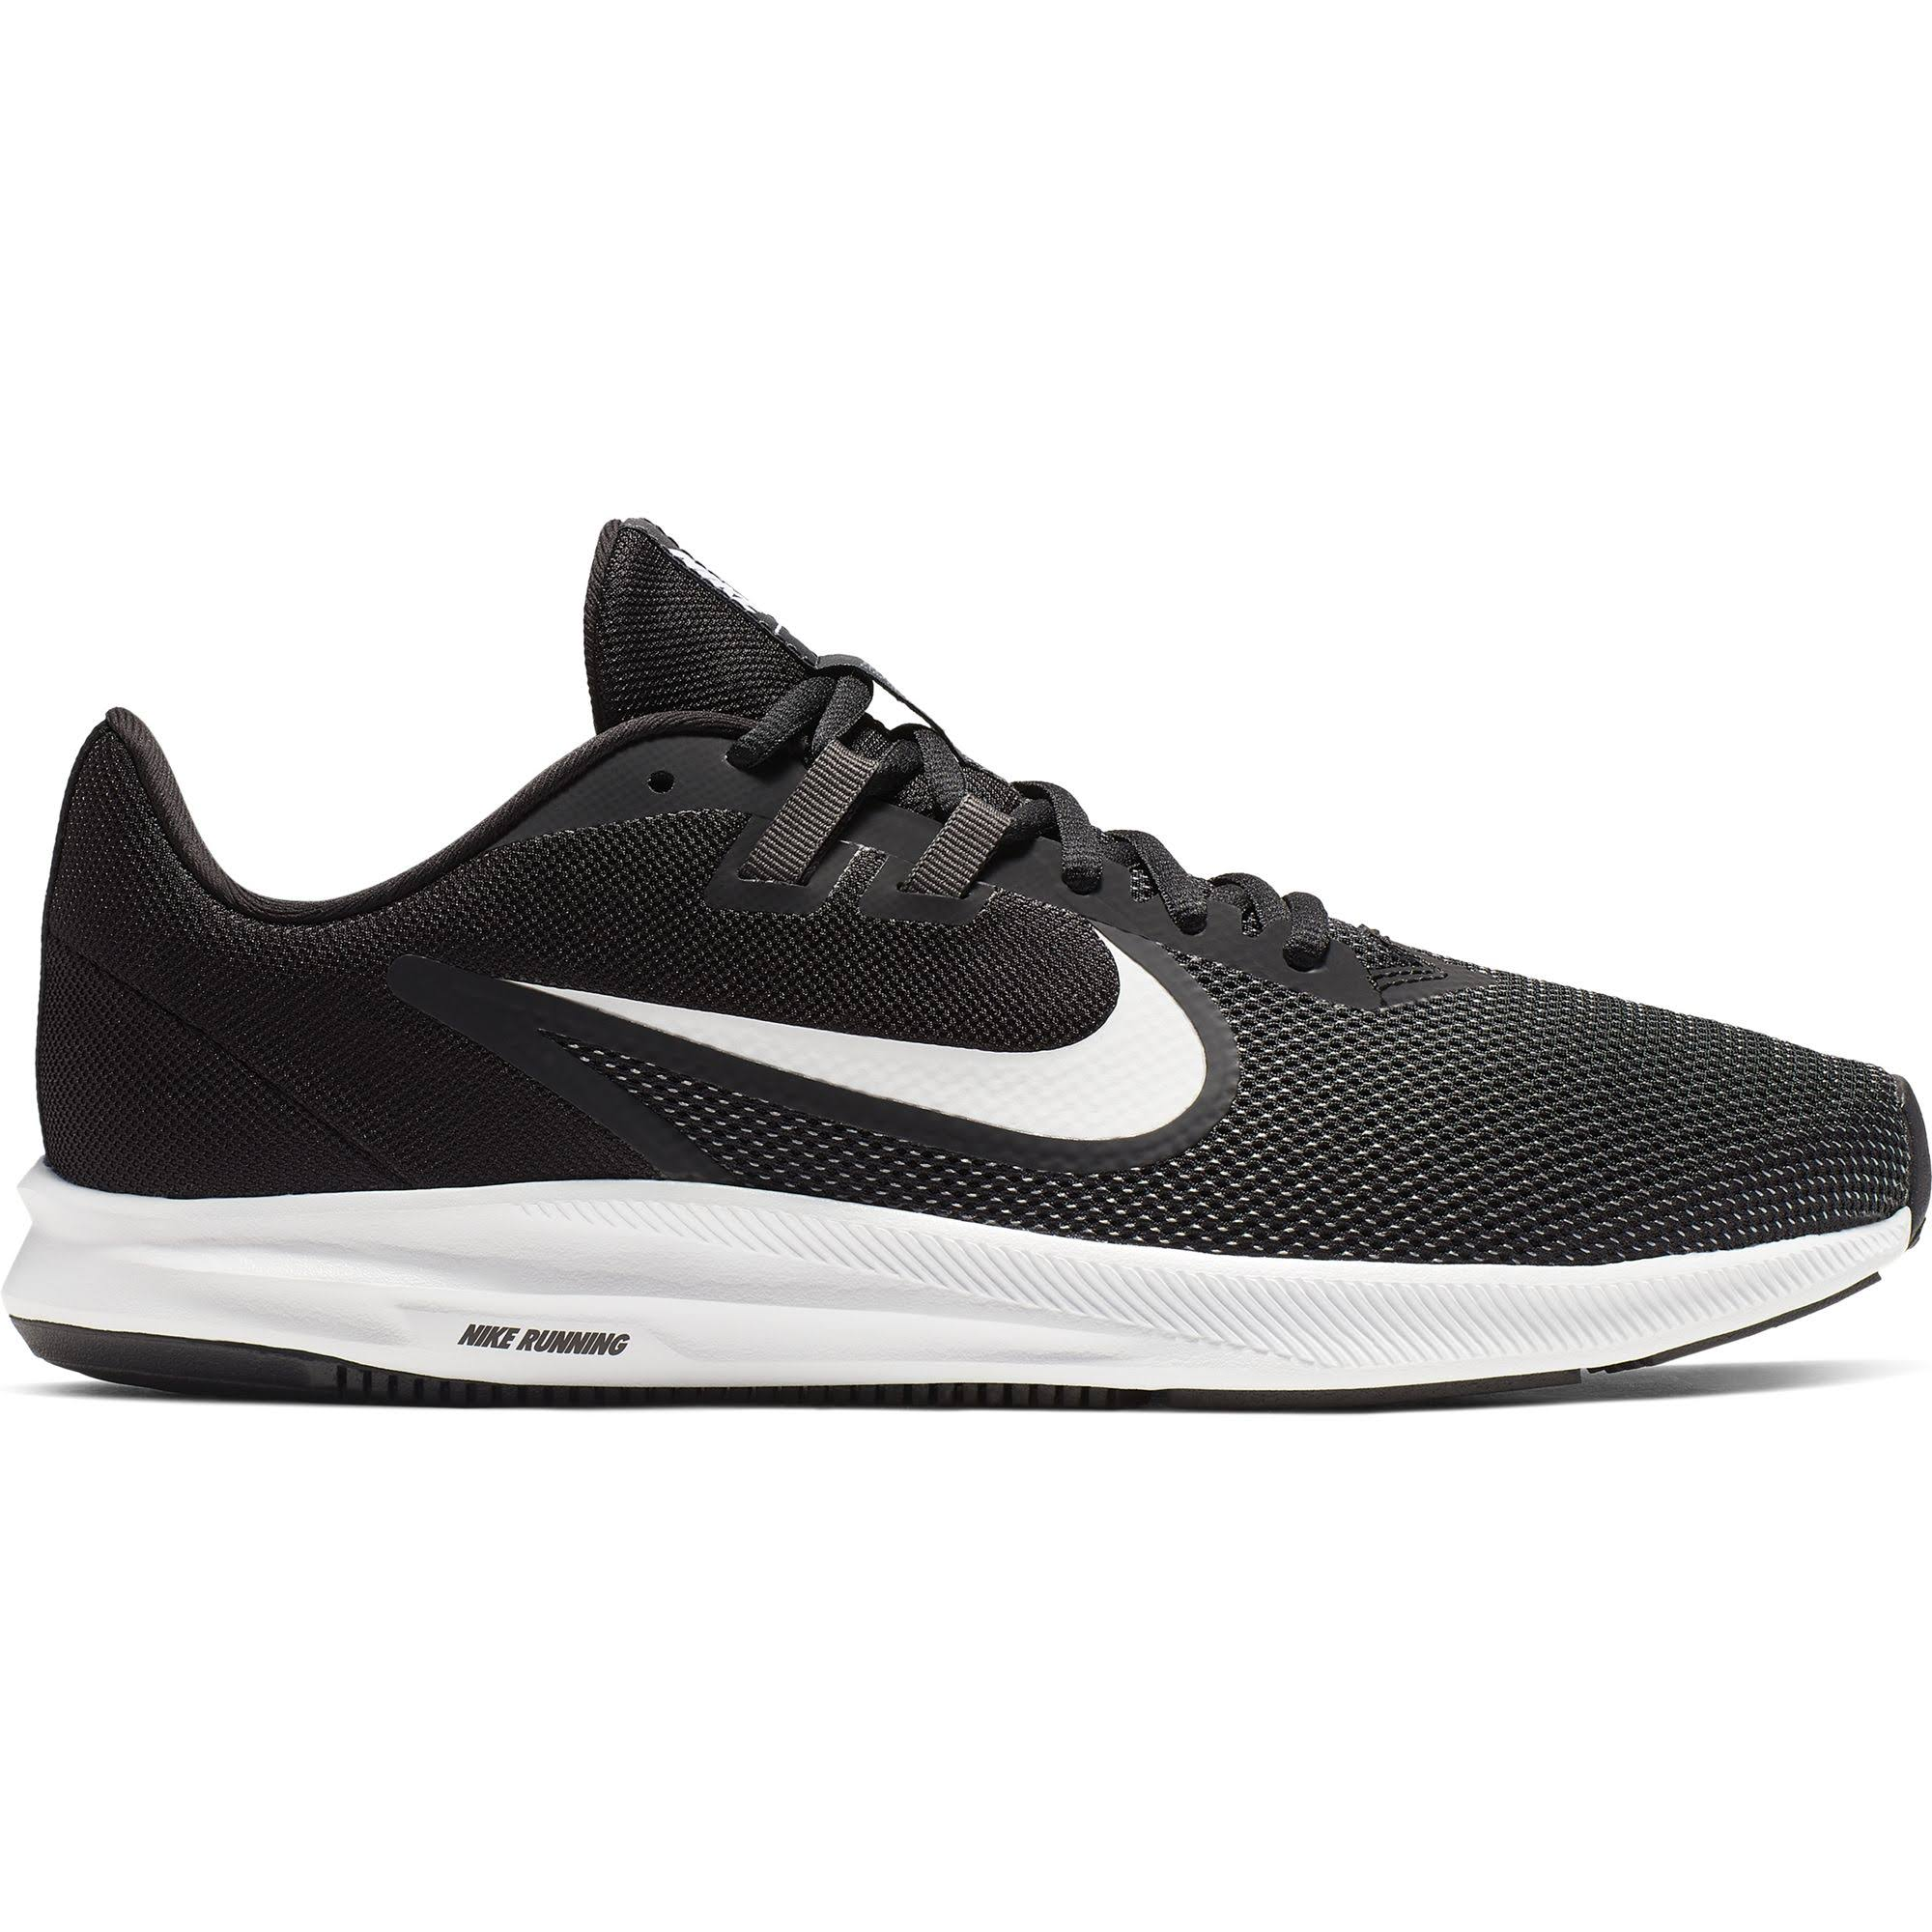 Nike Downshifter 9 - Black - Mens